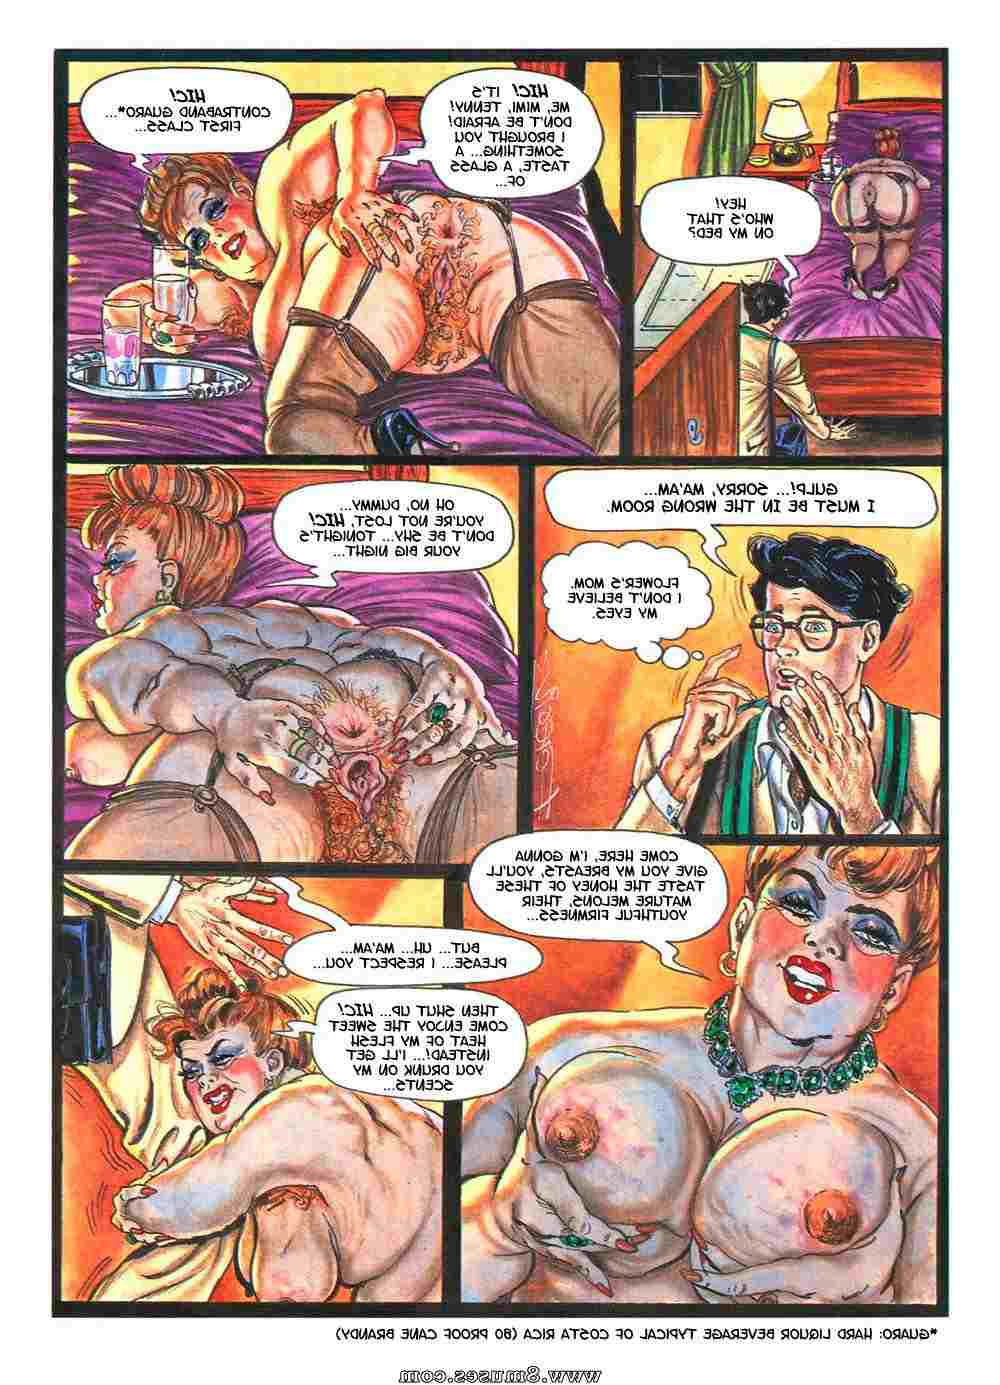 Ferocius-Comics/Forbidden-Flower Forbidden_Flower__8muses_-_Sex_and_Porn_Comics_22.jpg